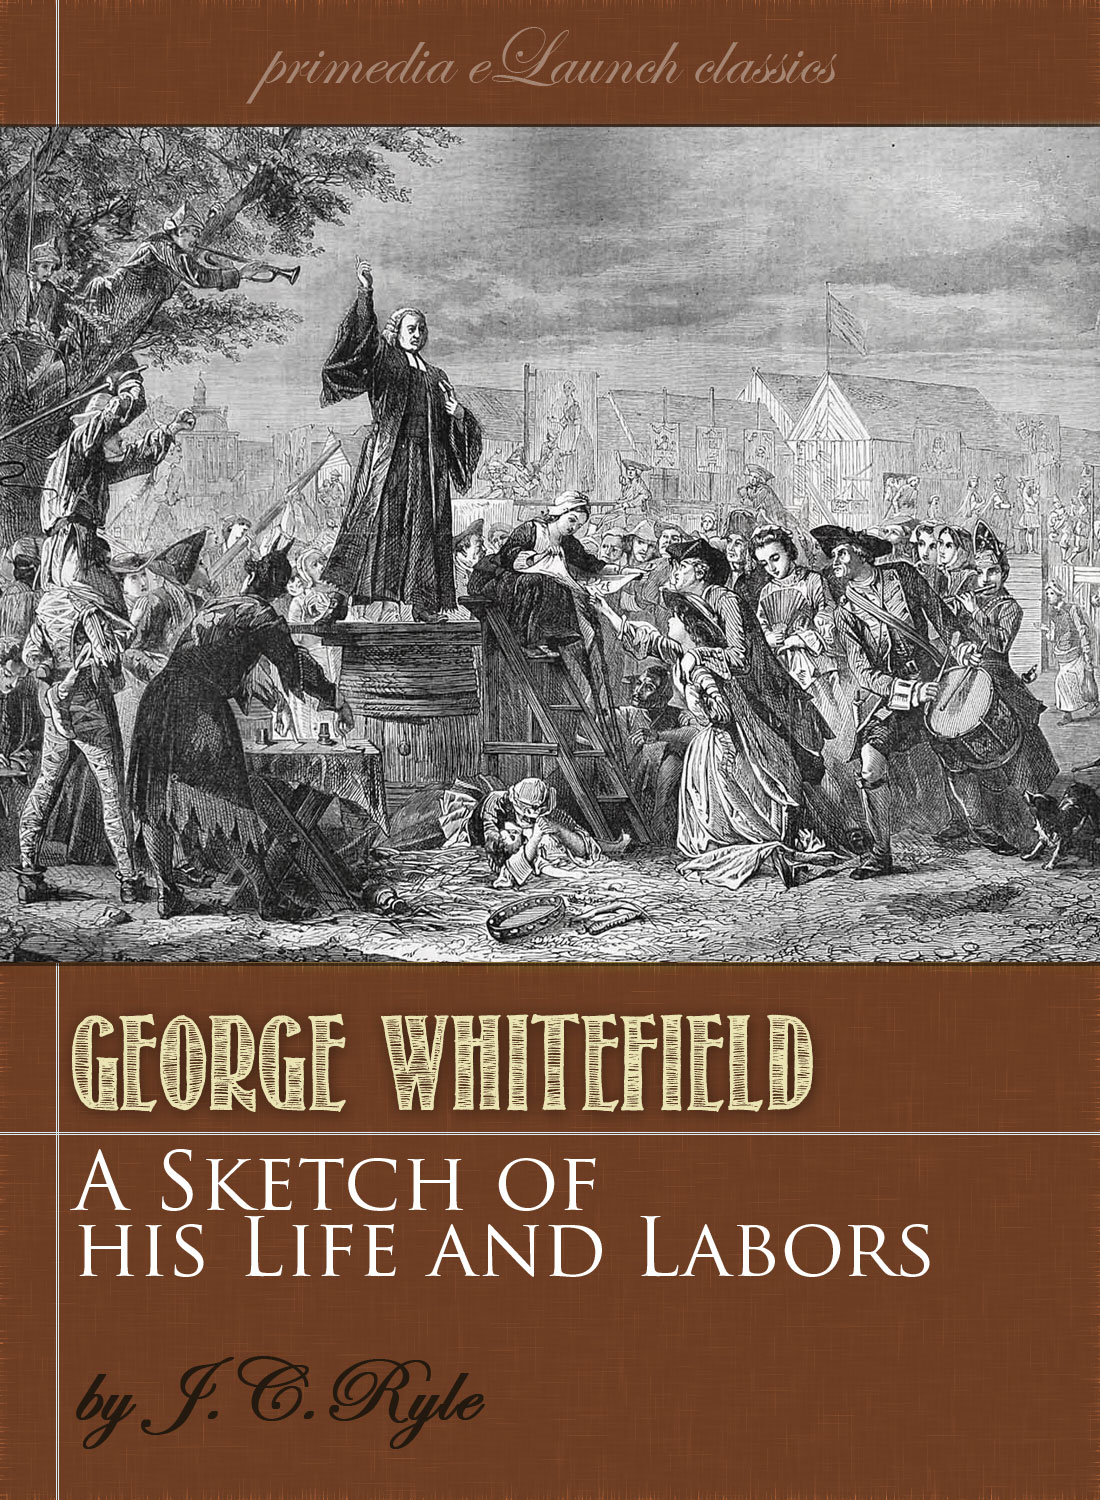 A Sketch of the Life and Labors of George Whitefield By: J.C. Ryle